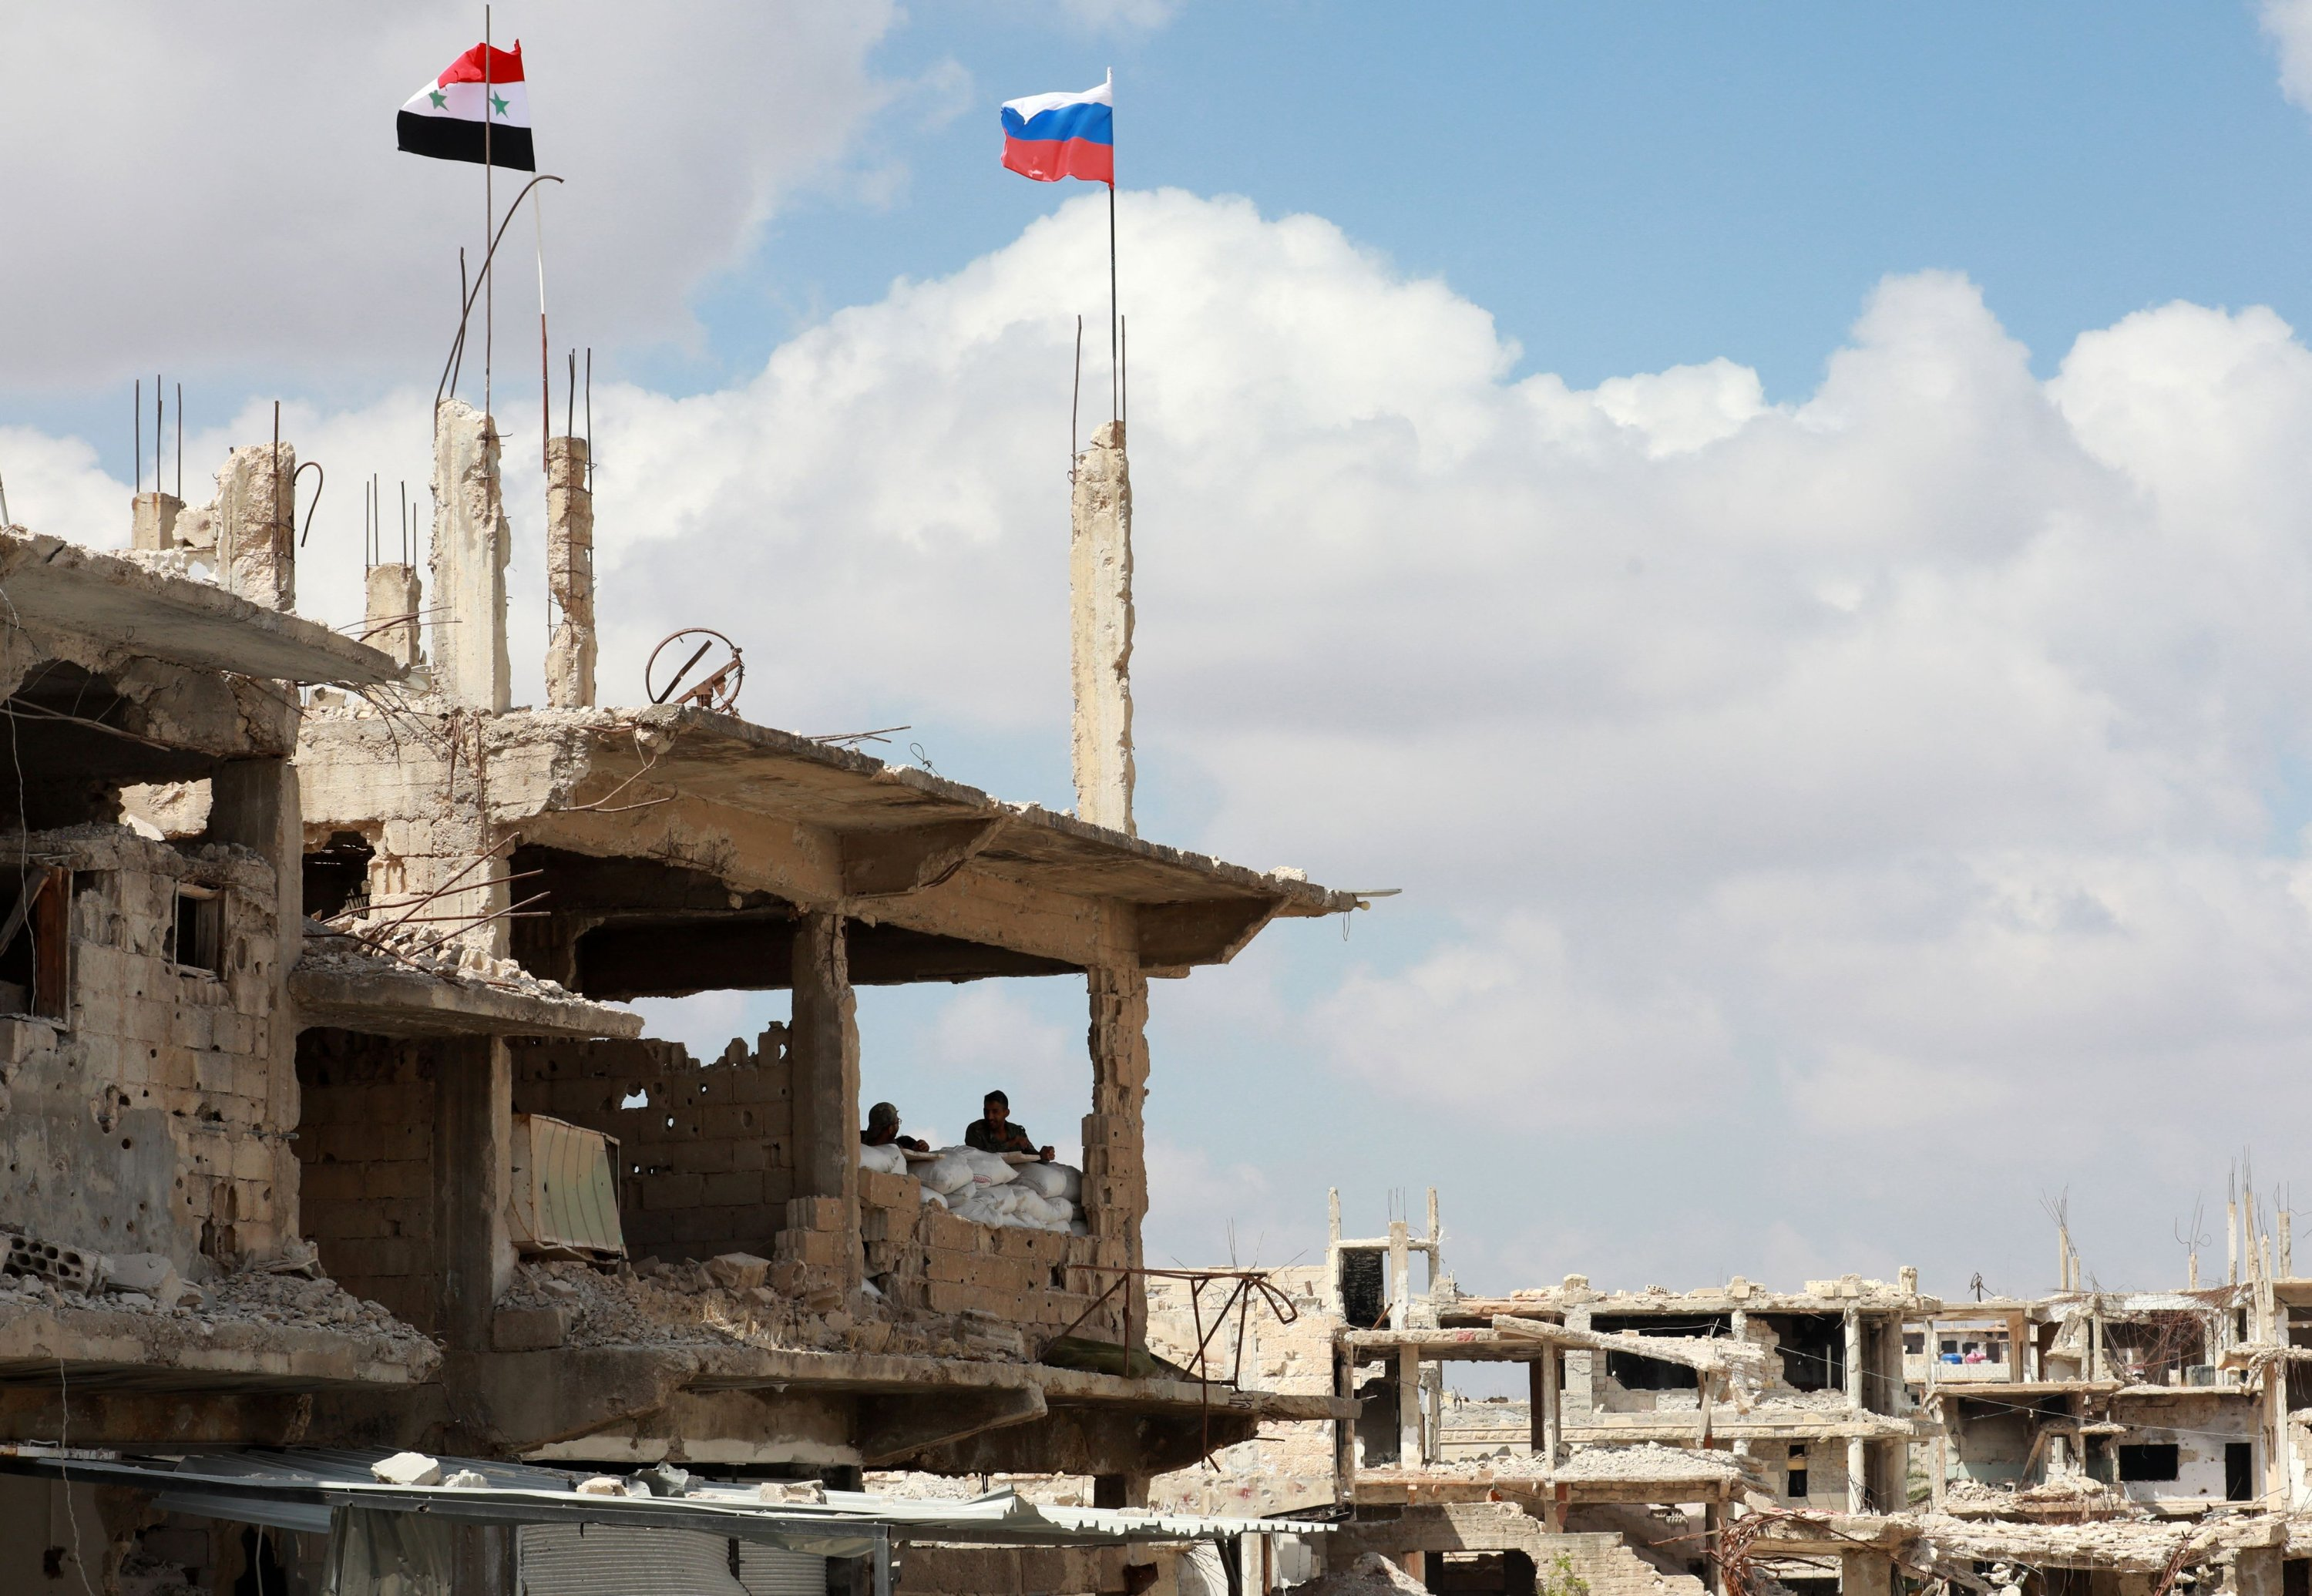 A Syrian and a Russian flag fly above a damaged building in the district of Daraa al-Balad of Syria's southern city of Daraa, on Sept. 12, 2021. (AFP Photo)